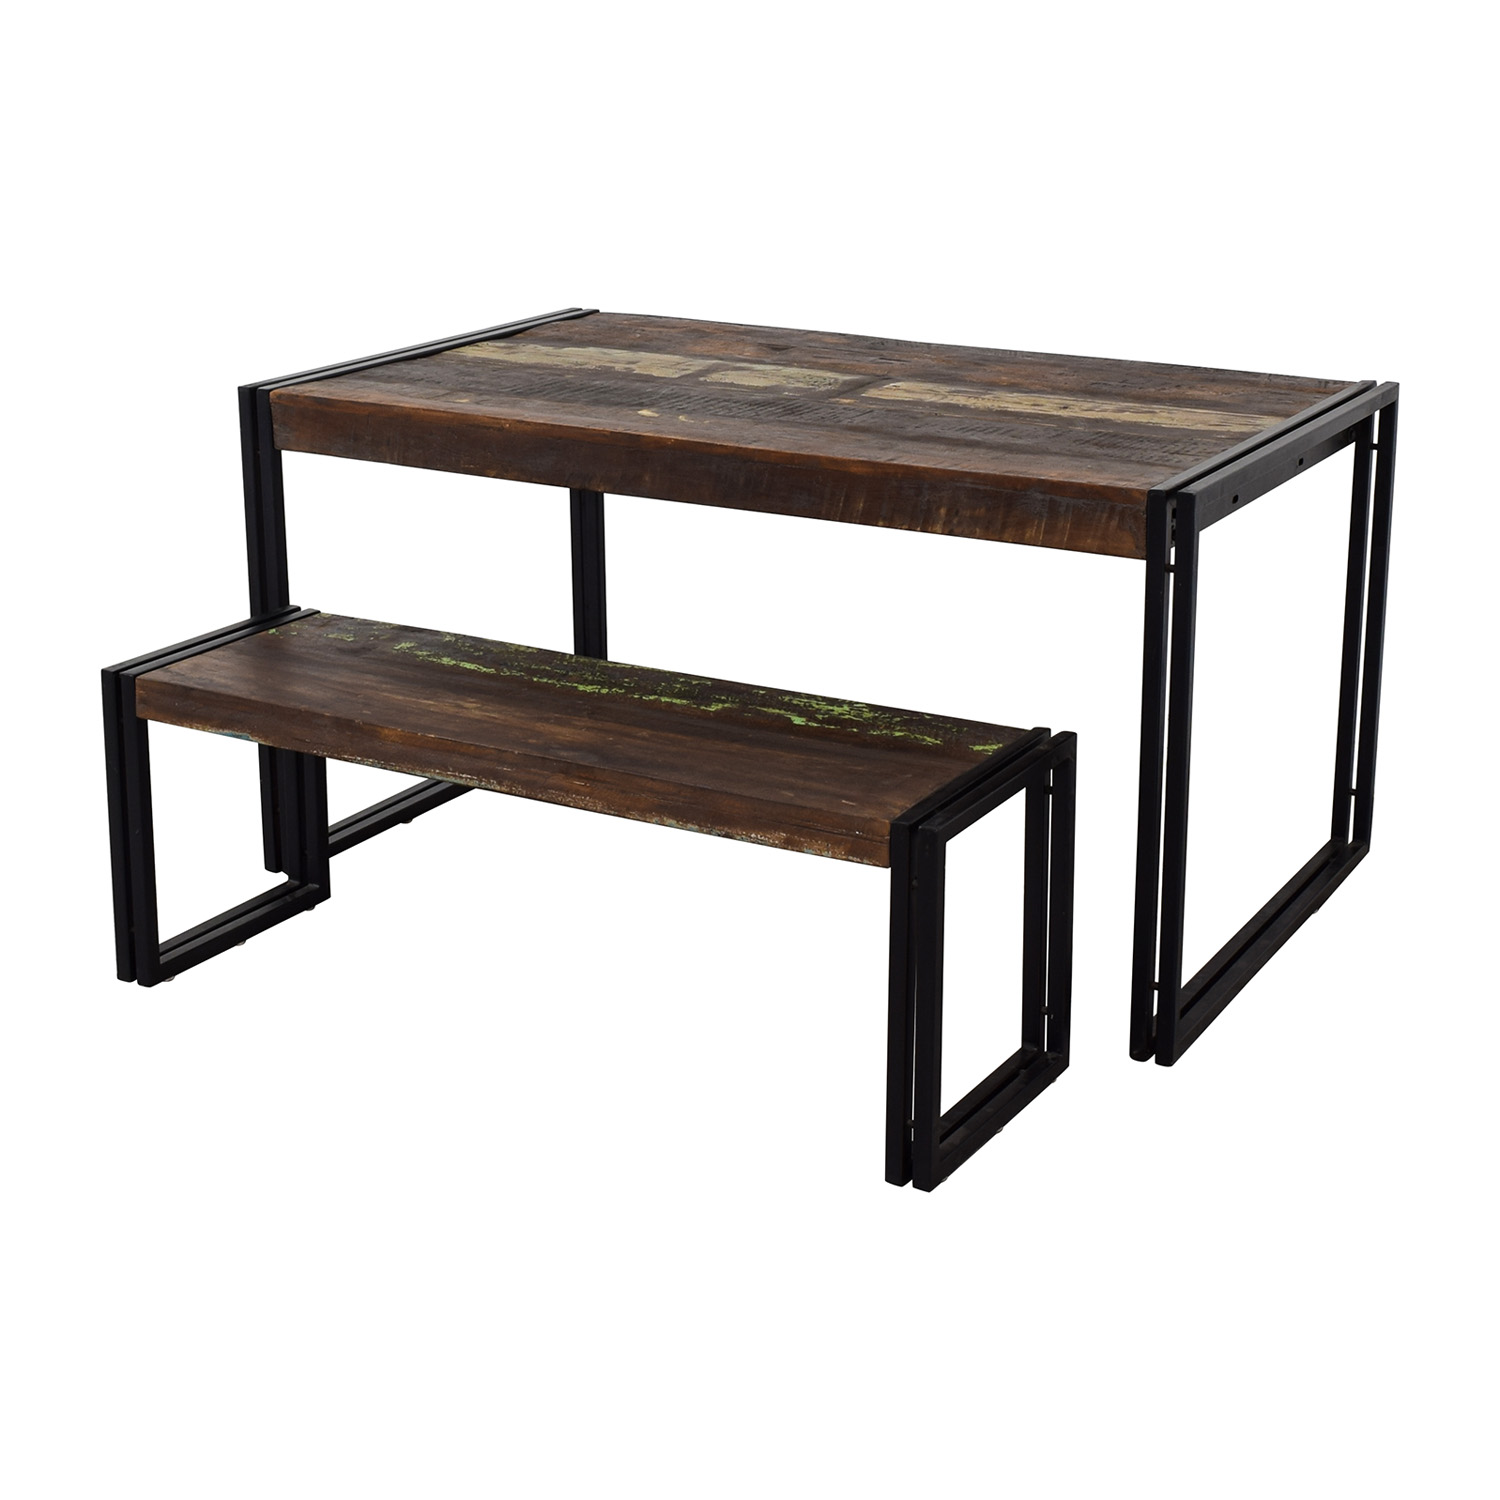 Timber Solid Reclaimed Wood Dining Table With Bench Online